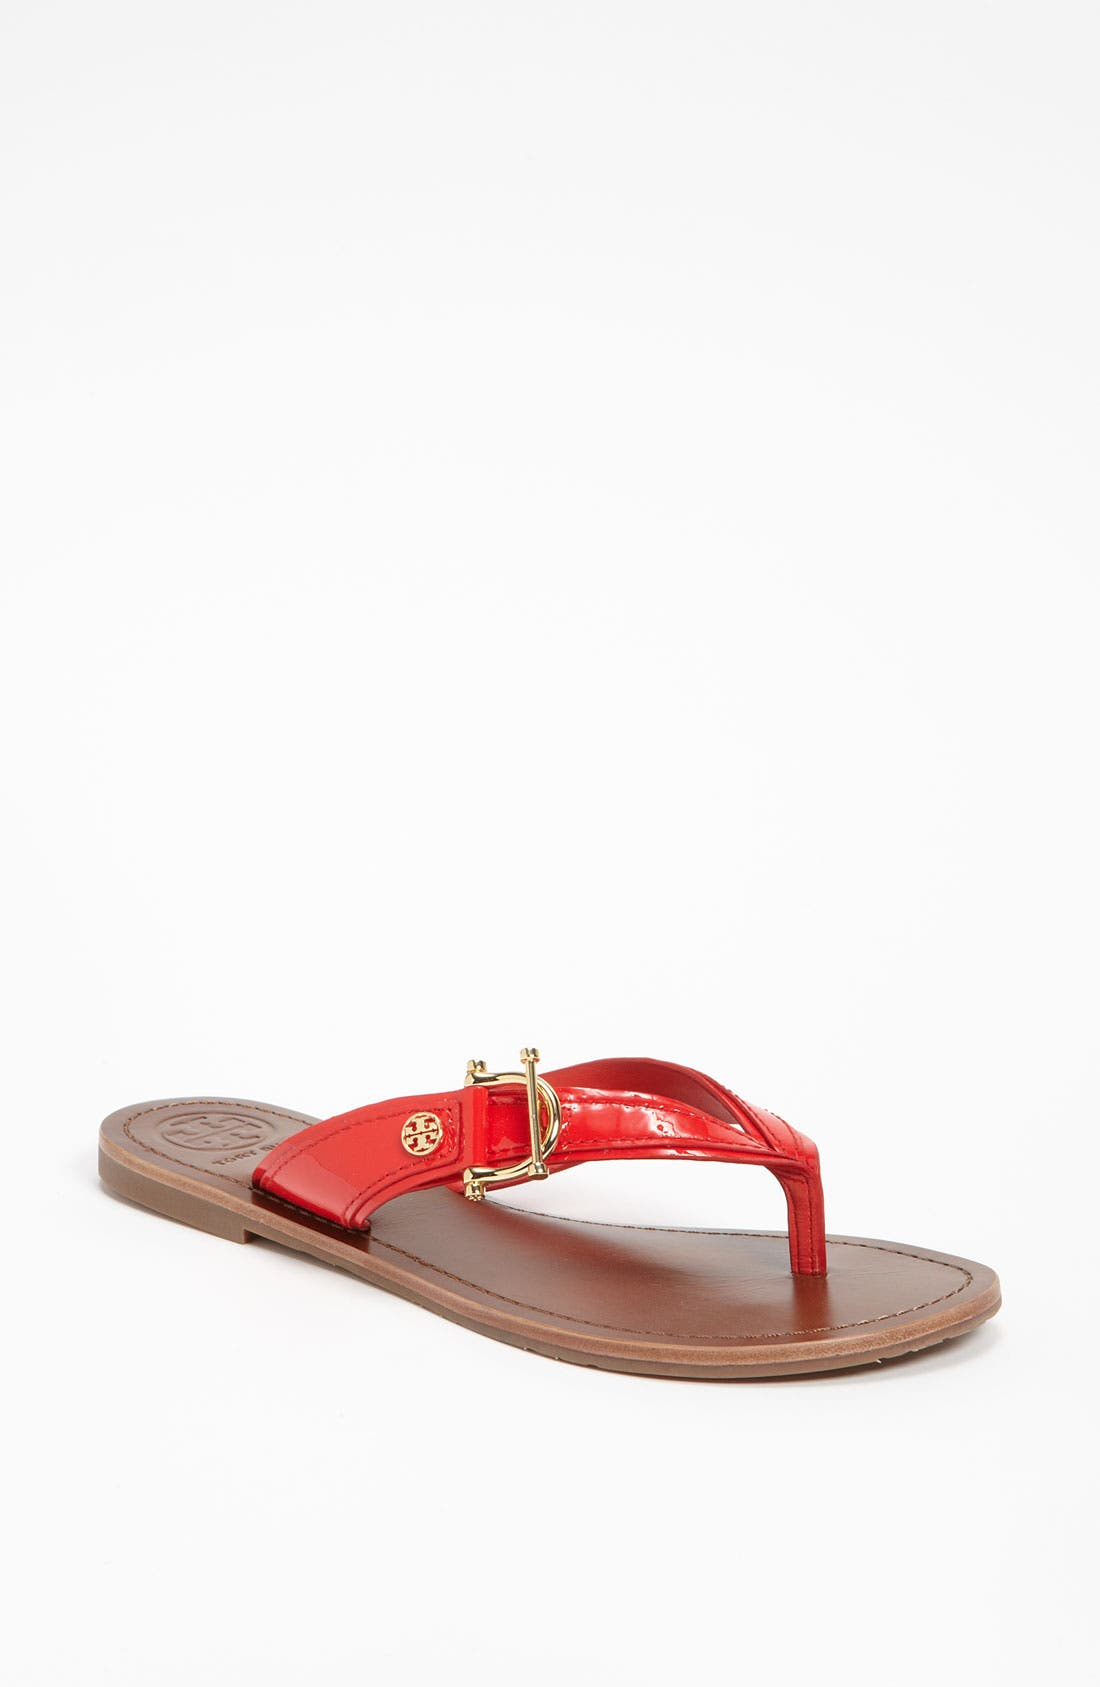 Alternate Image 1 Selected - Tory Burch 'Nora' Sandal (Nordstrom Exclusive)